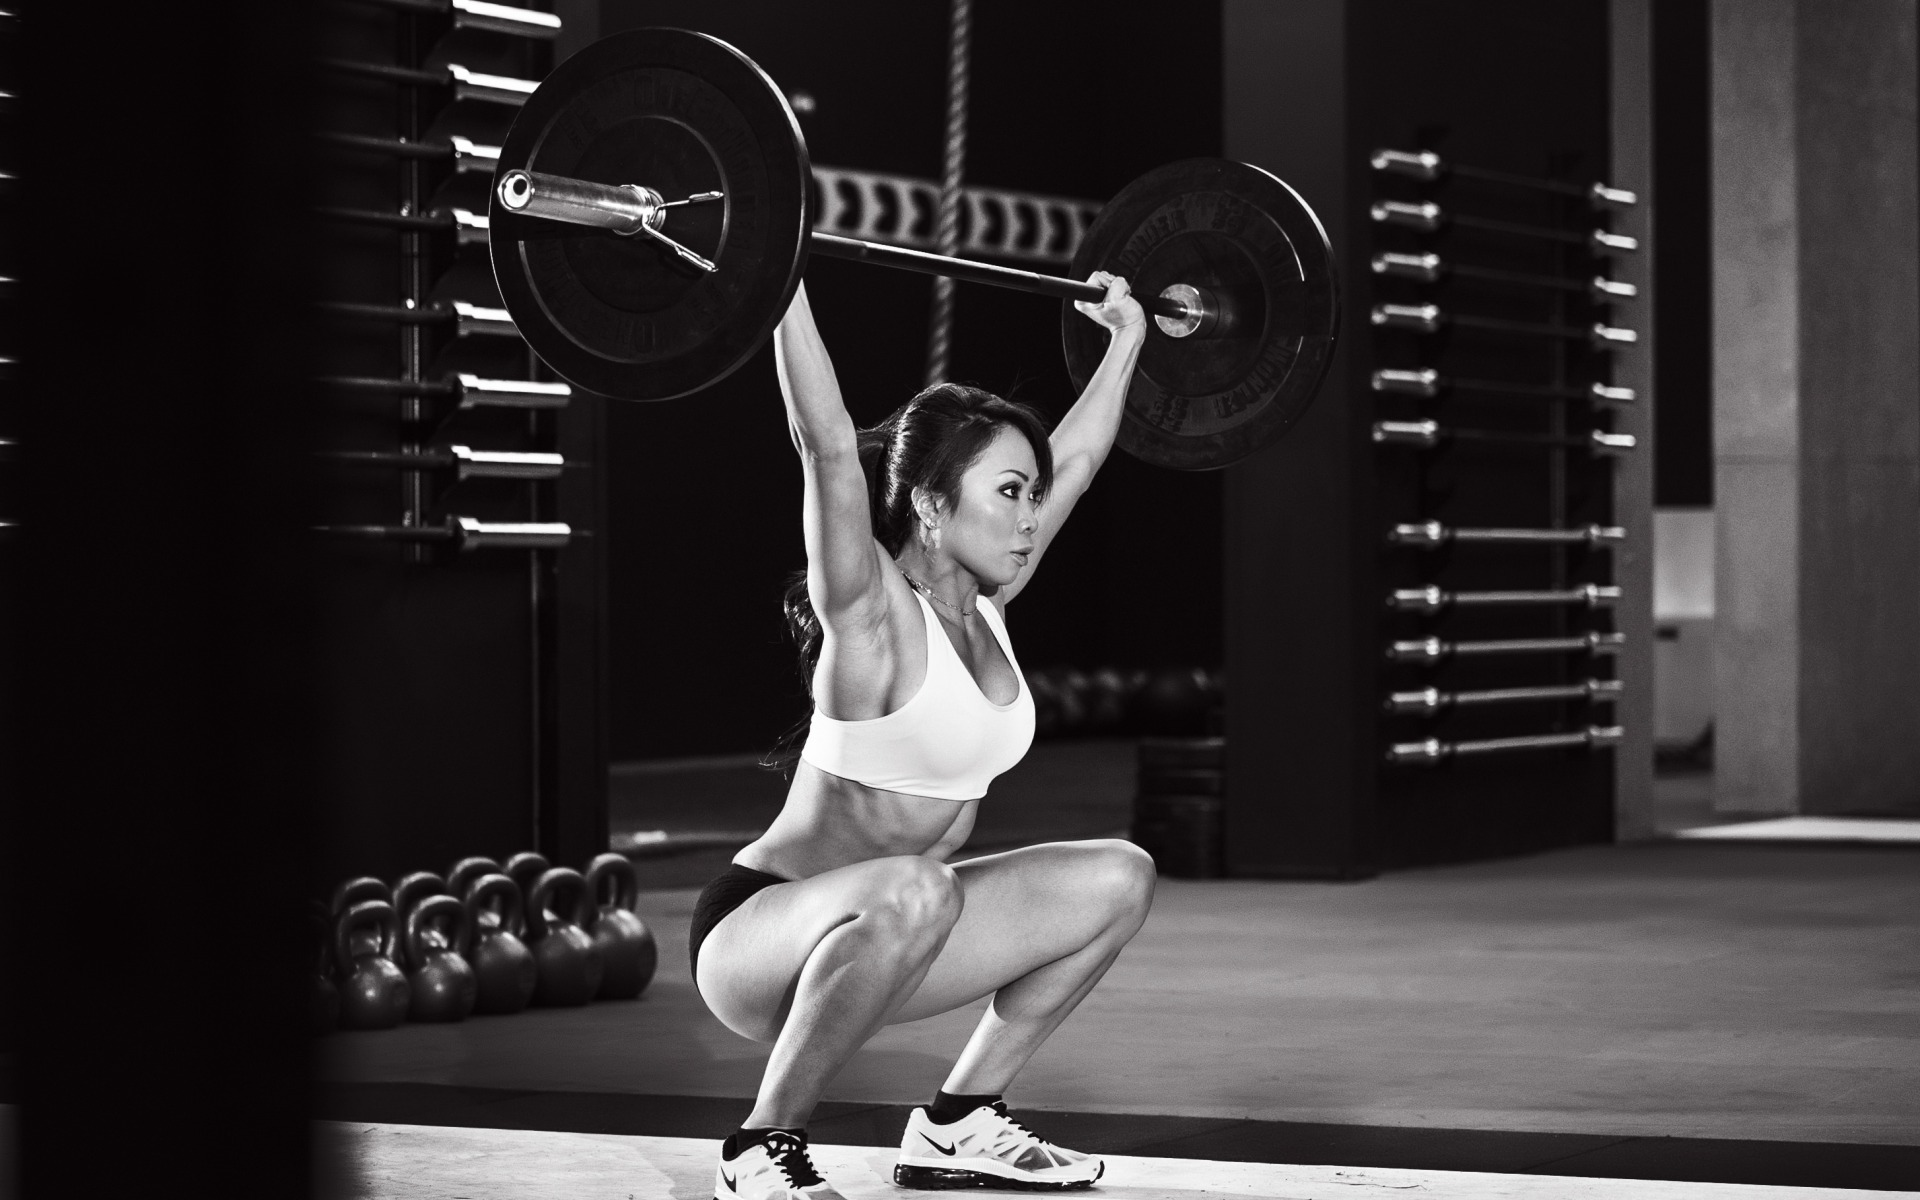 Weightlifting HD Wallpaper